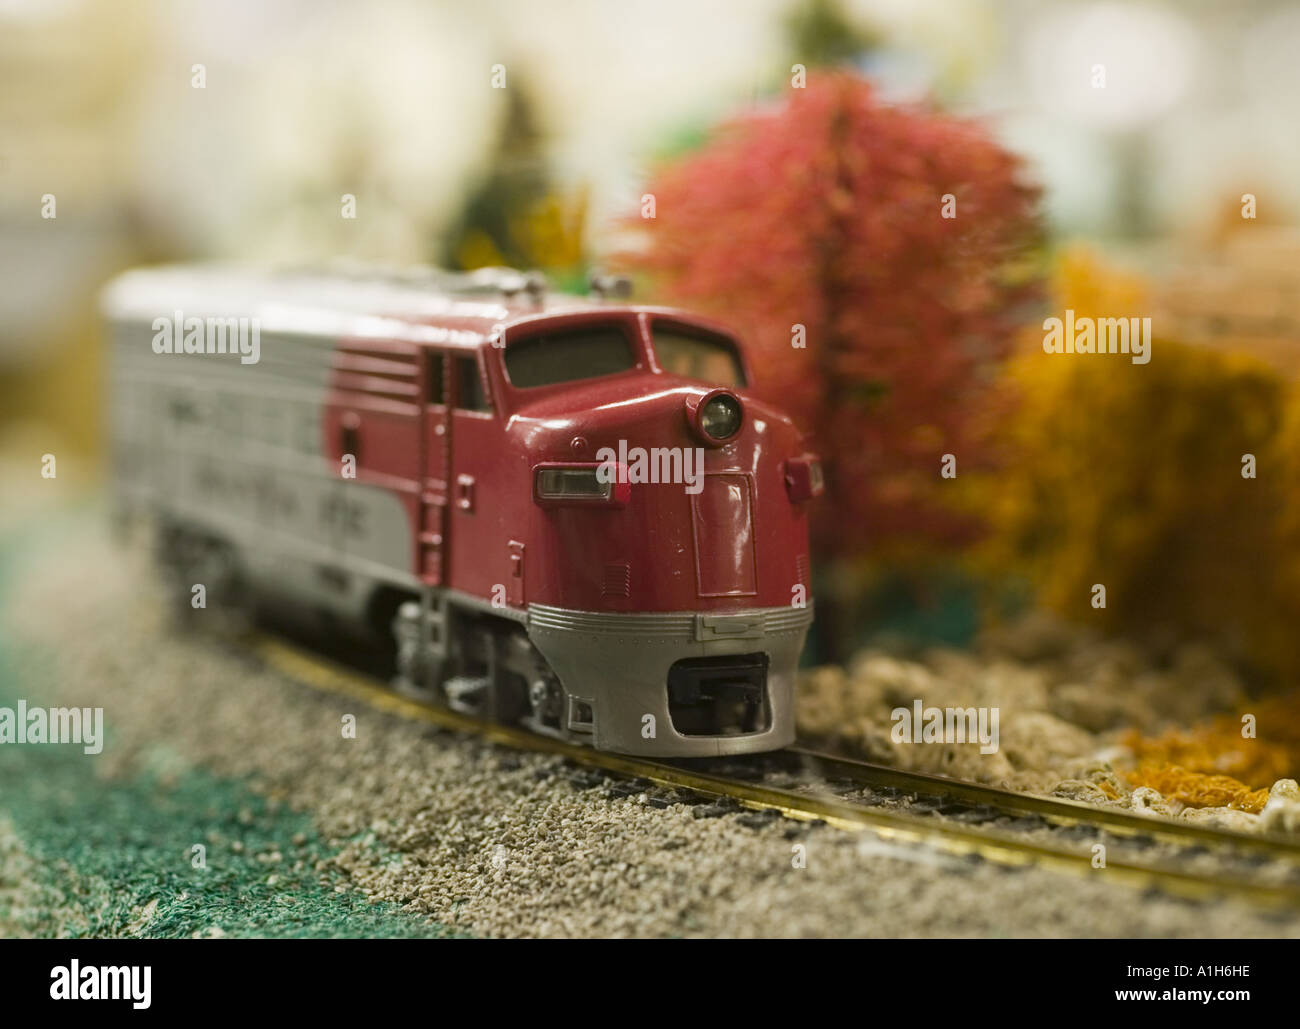 Toy train by Lionel Stock Photo